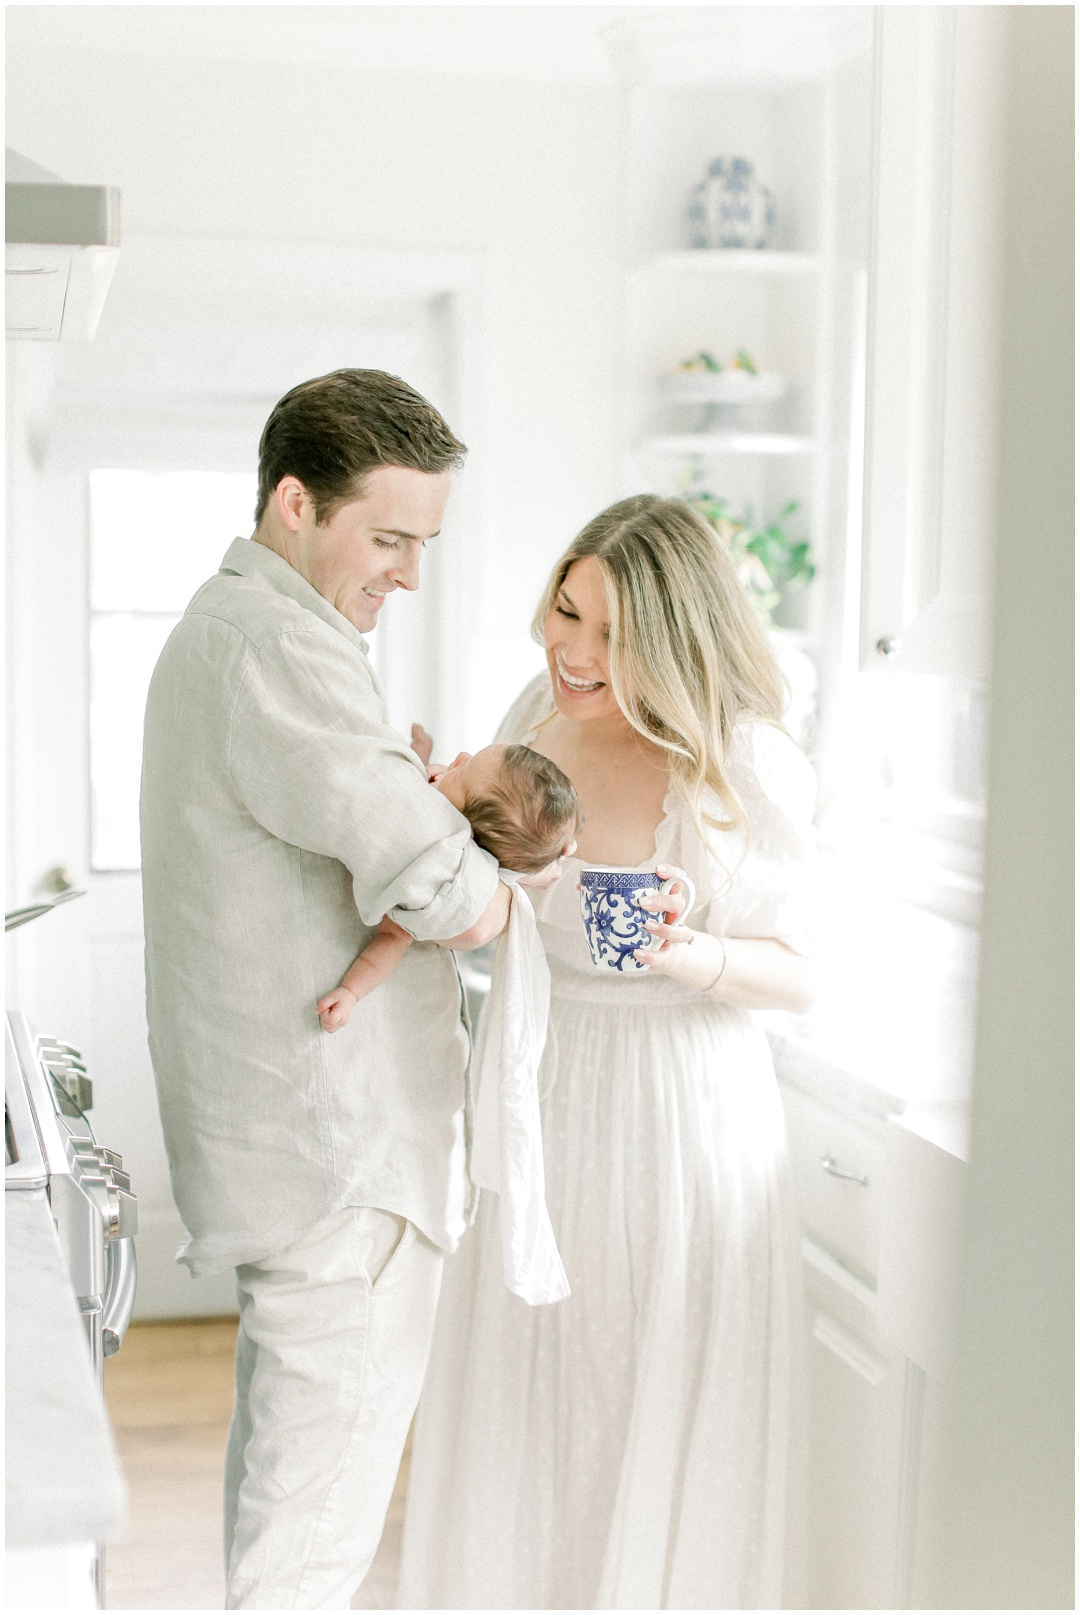 Newport_Beach_Newborn_Light_Airy_Natural_Photographer_Newport_Beach_Photographer_Orange_County_Family_Photographer_Cori_Kleckner_Photography_Huntington_Beach_Photographer_Family_OC_Maternity_Breanna_Santillo__3676.jpg